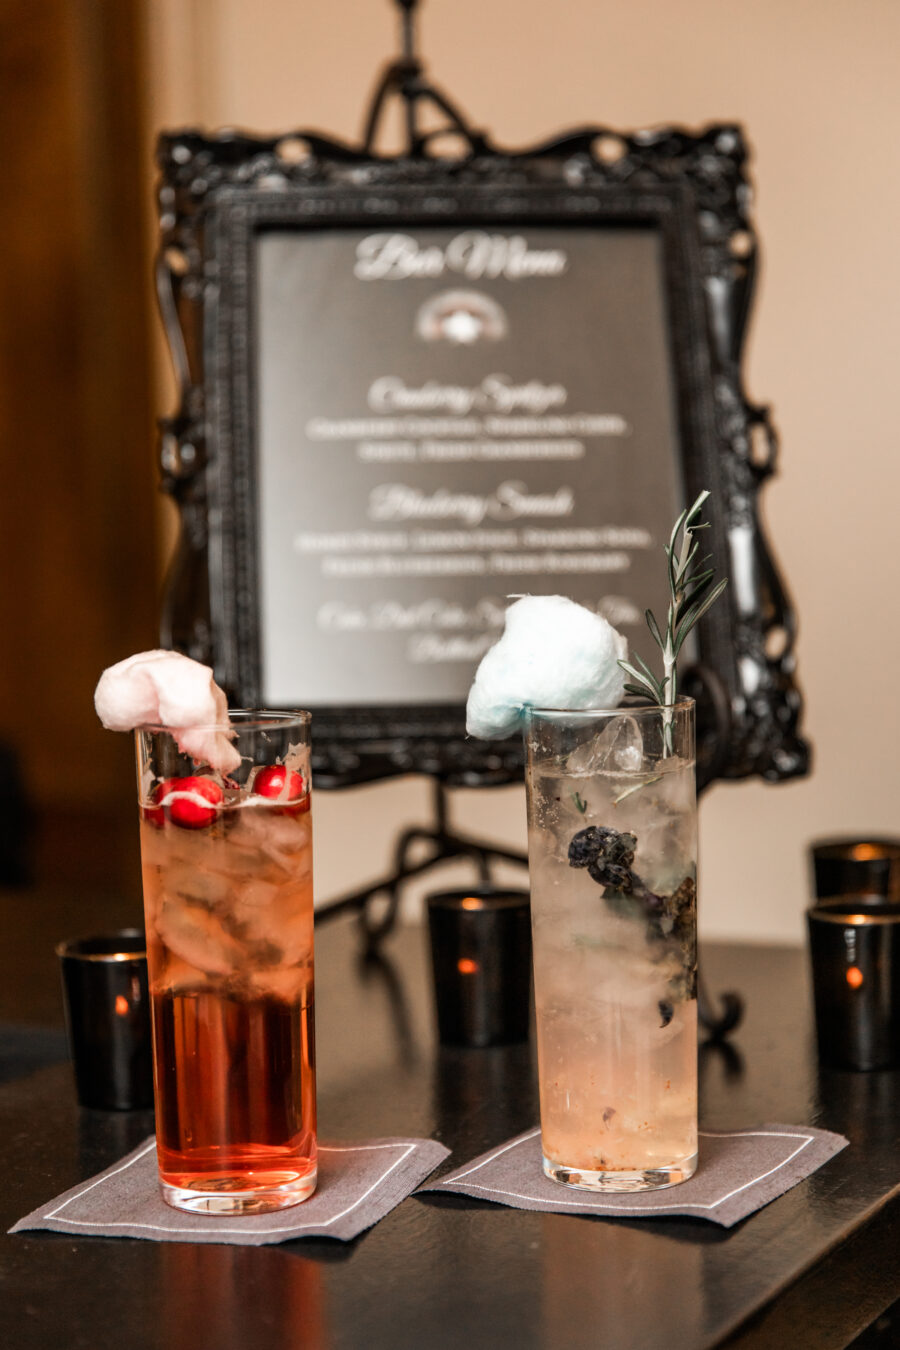 Wedding drinks with cotton candy: Nashville Wish Upon a Wedding captured by Nyk + Cali Photography featured on Nashville Bride Guide